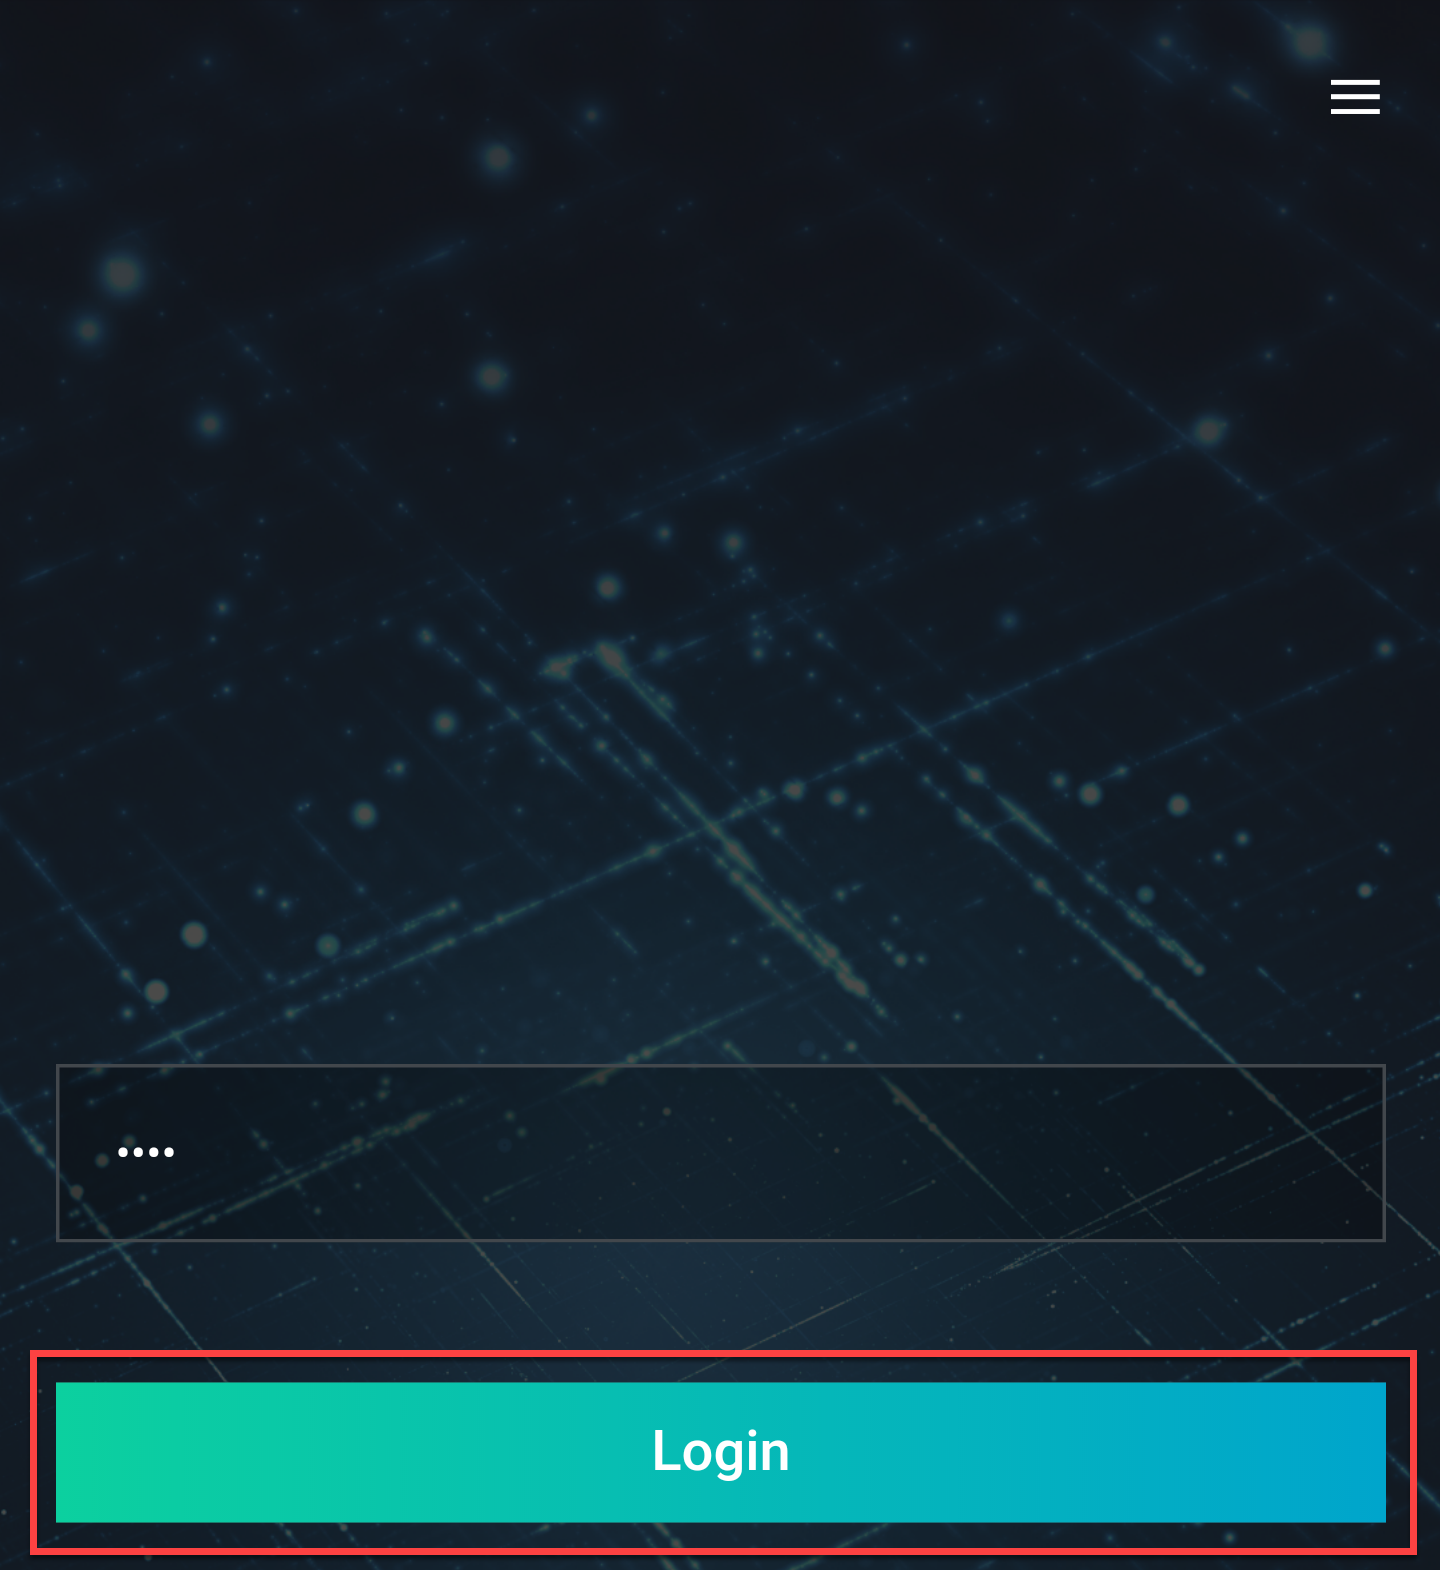 Enter Pin and tap login